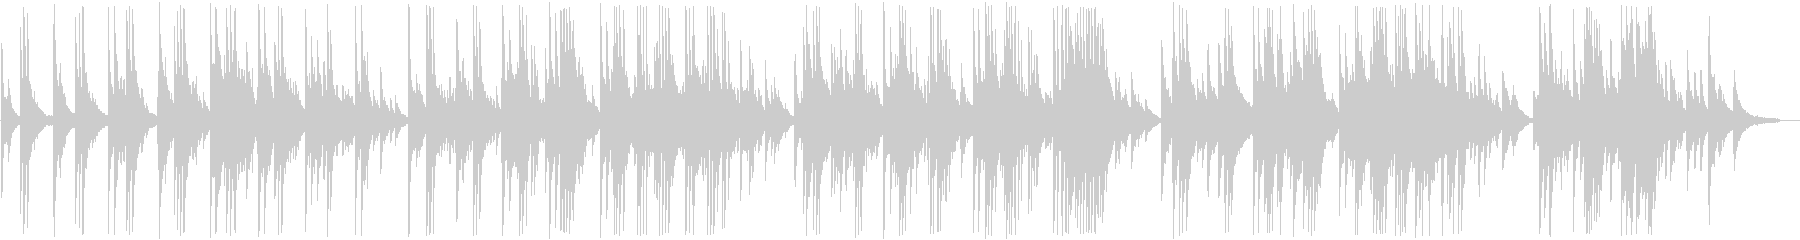 Bright and painful piano ballad's unreproduced waveform